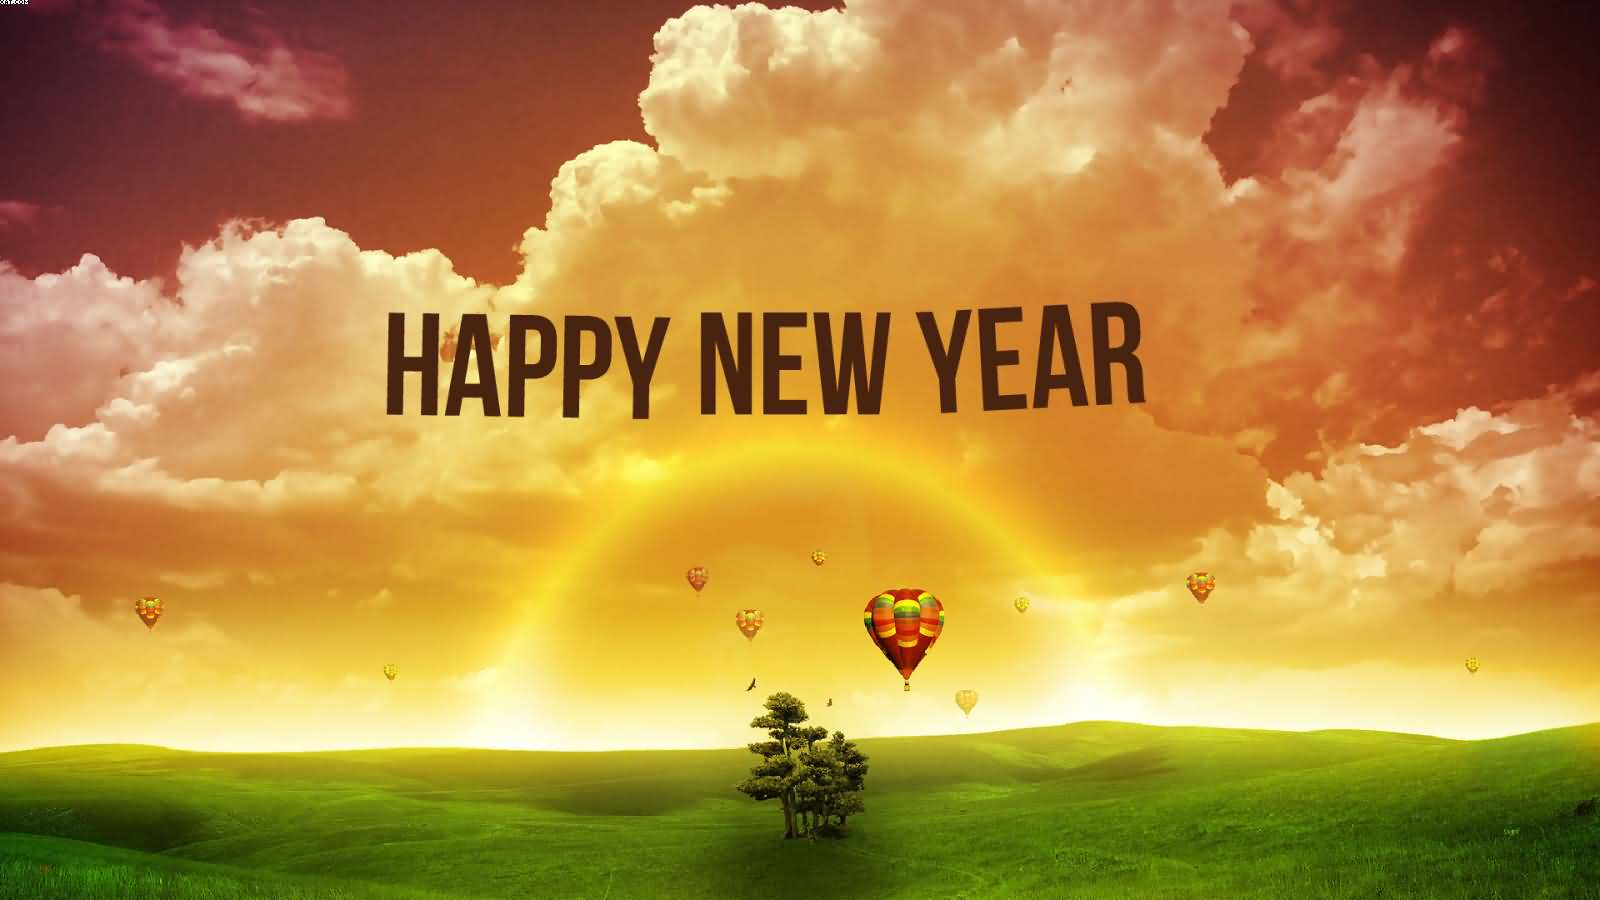 Happy New Year 2017 HD Nature Wallpaper - Happy New Year 2017 ...